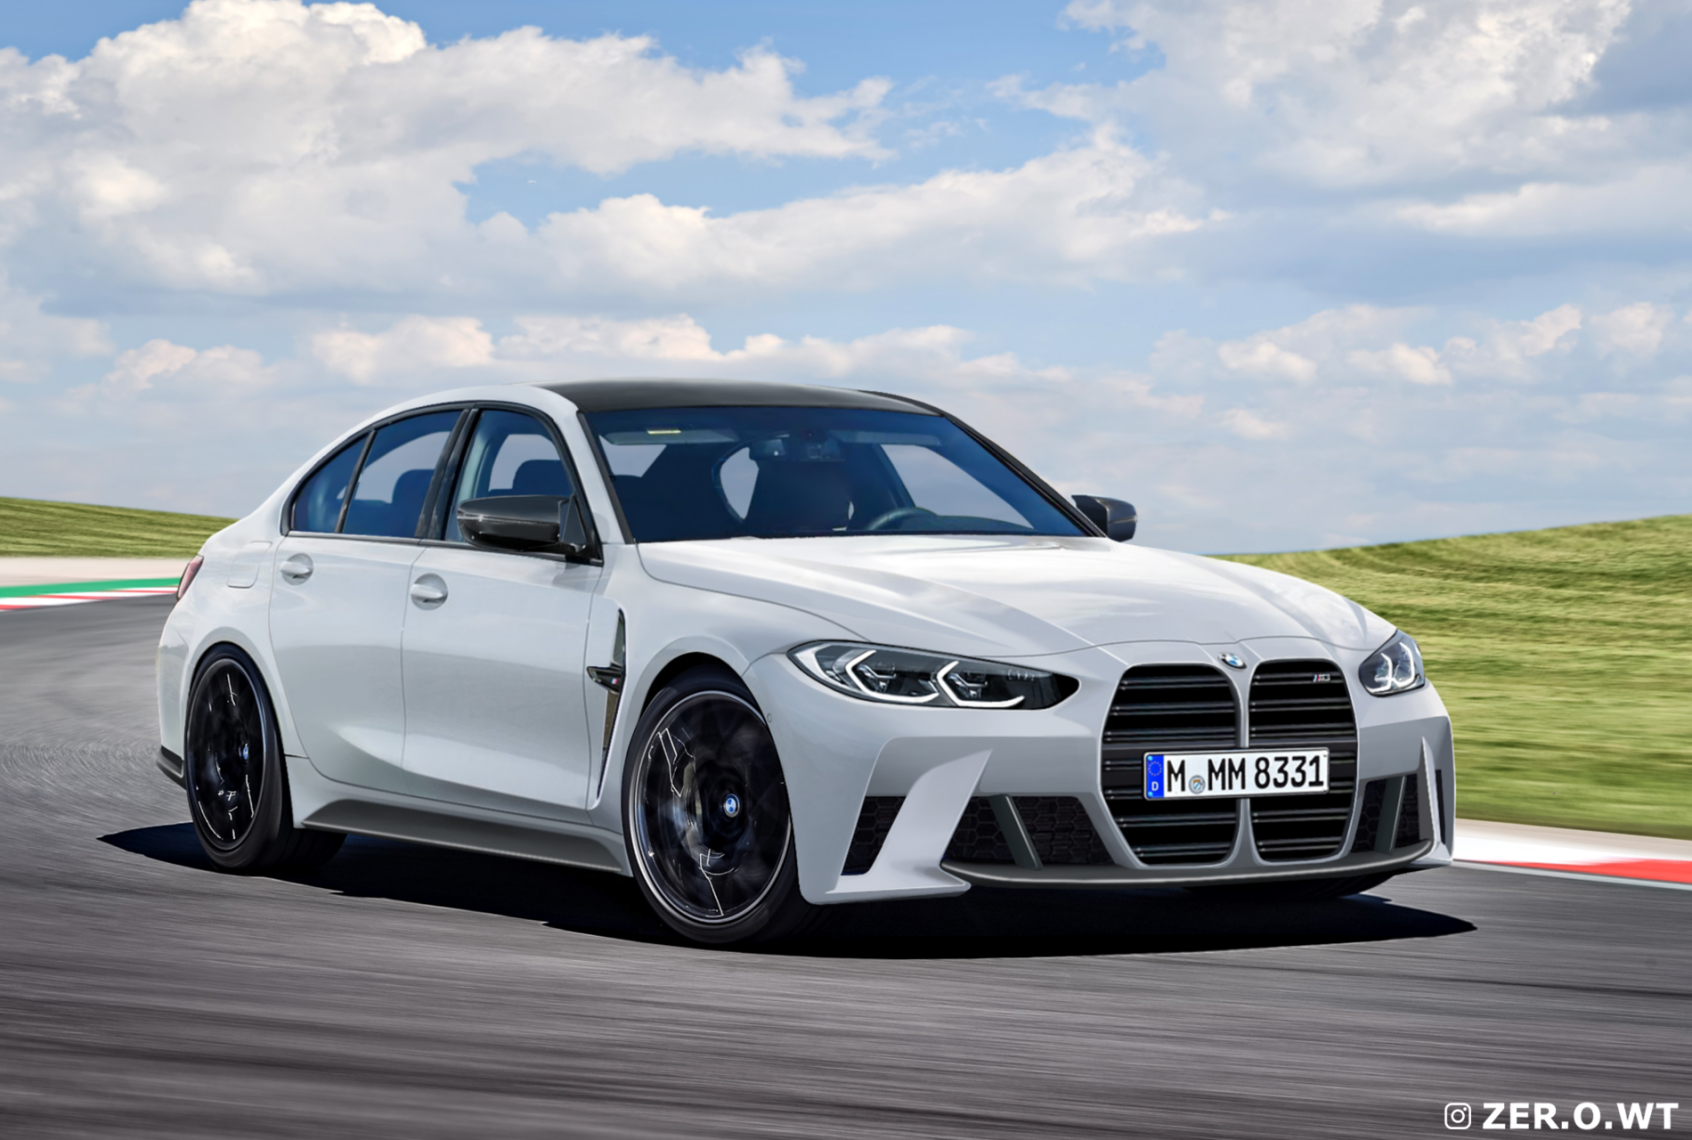 2021 Bmw M3 Sedan New Render Show The Front And Rear Of The G80